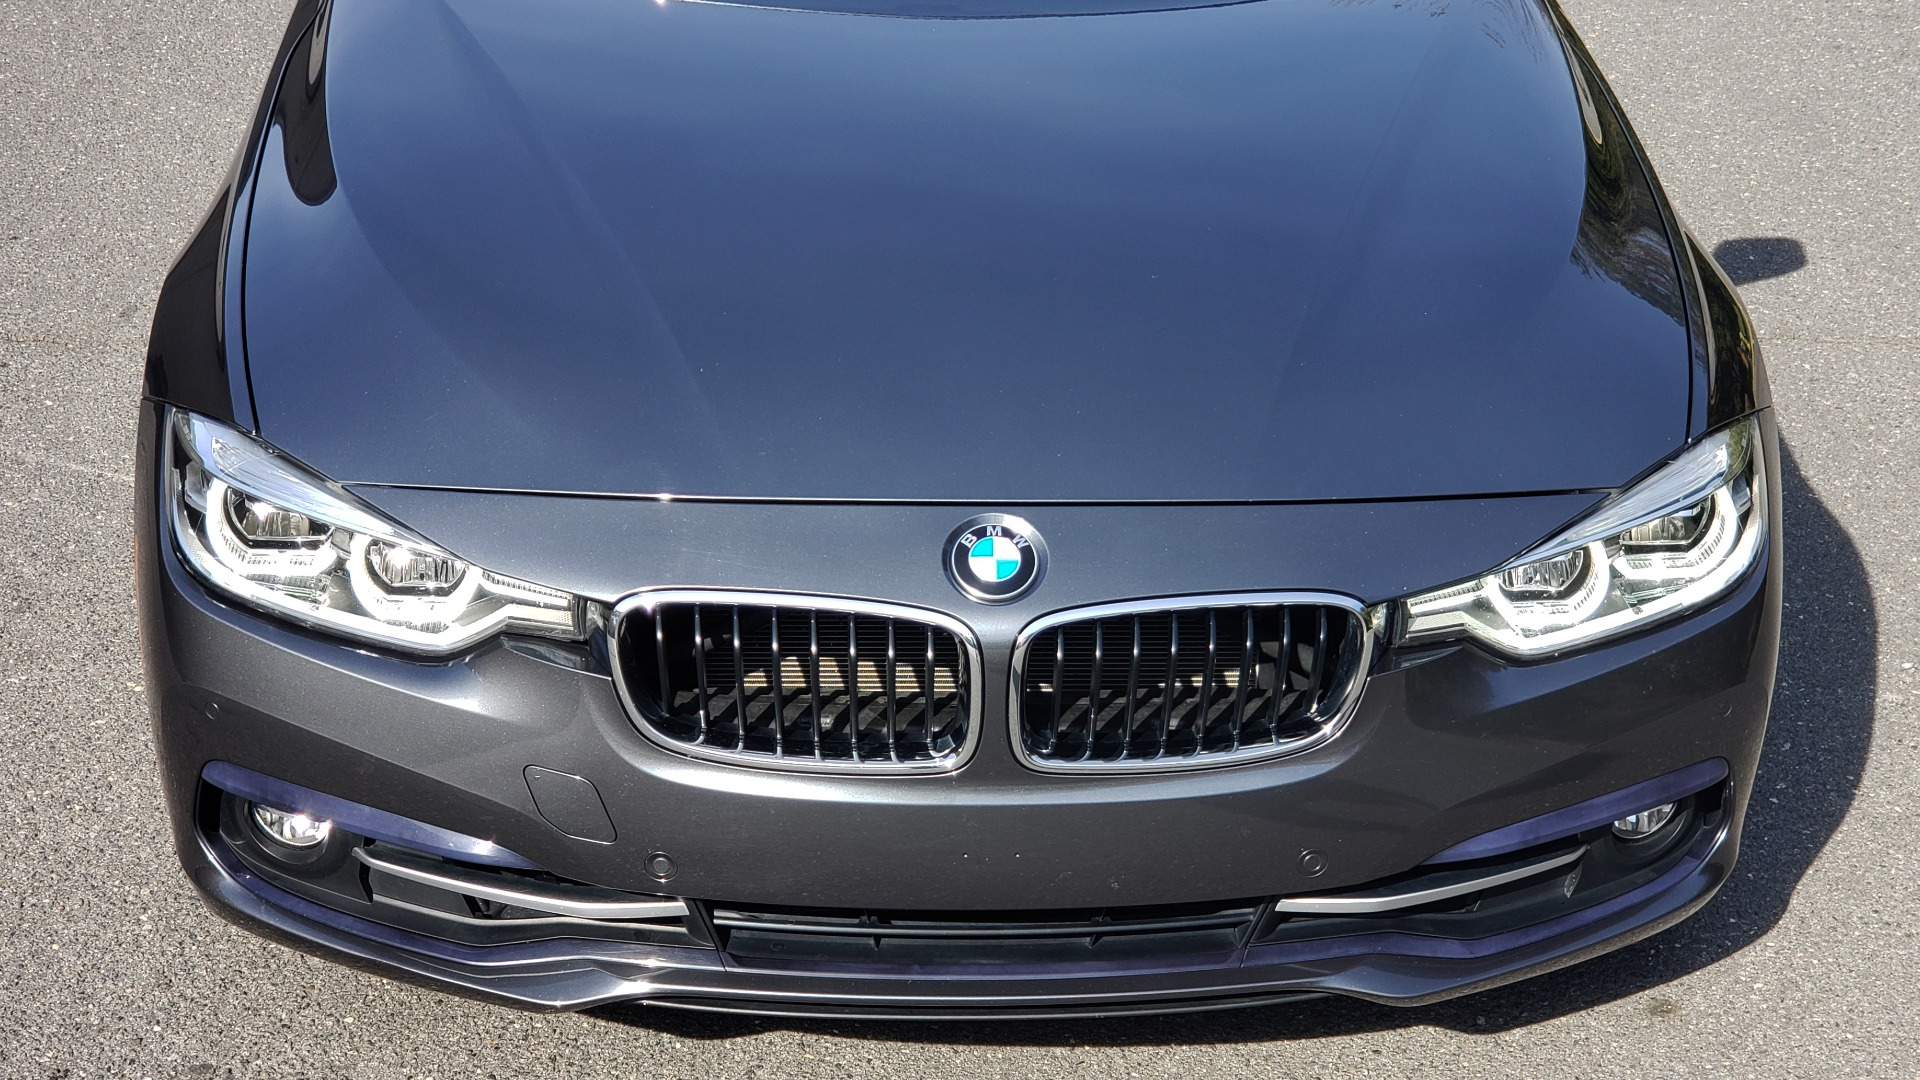 Used 2017 BMW 3 SERIES 330I PREMIUM / DRVR ASST / NAV / SUNROOF / HTD STS / REARVIEW for sale Sold at Formula Imports in Charlotte NC 28227 23